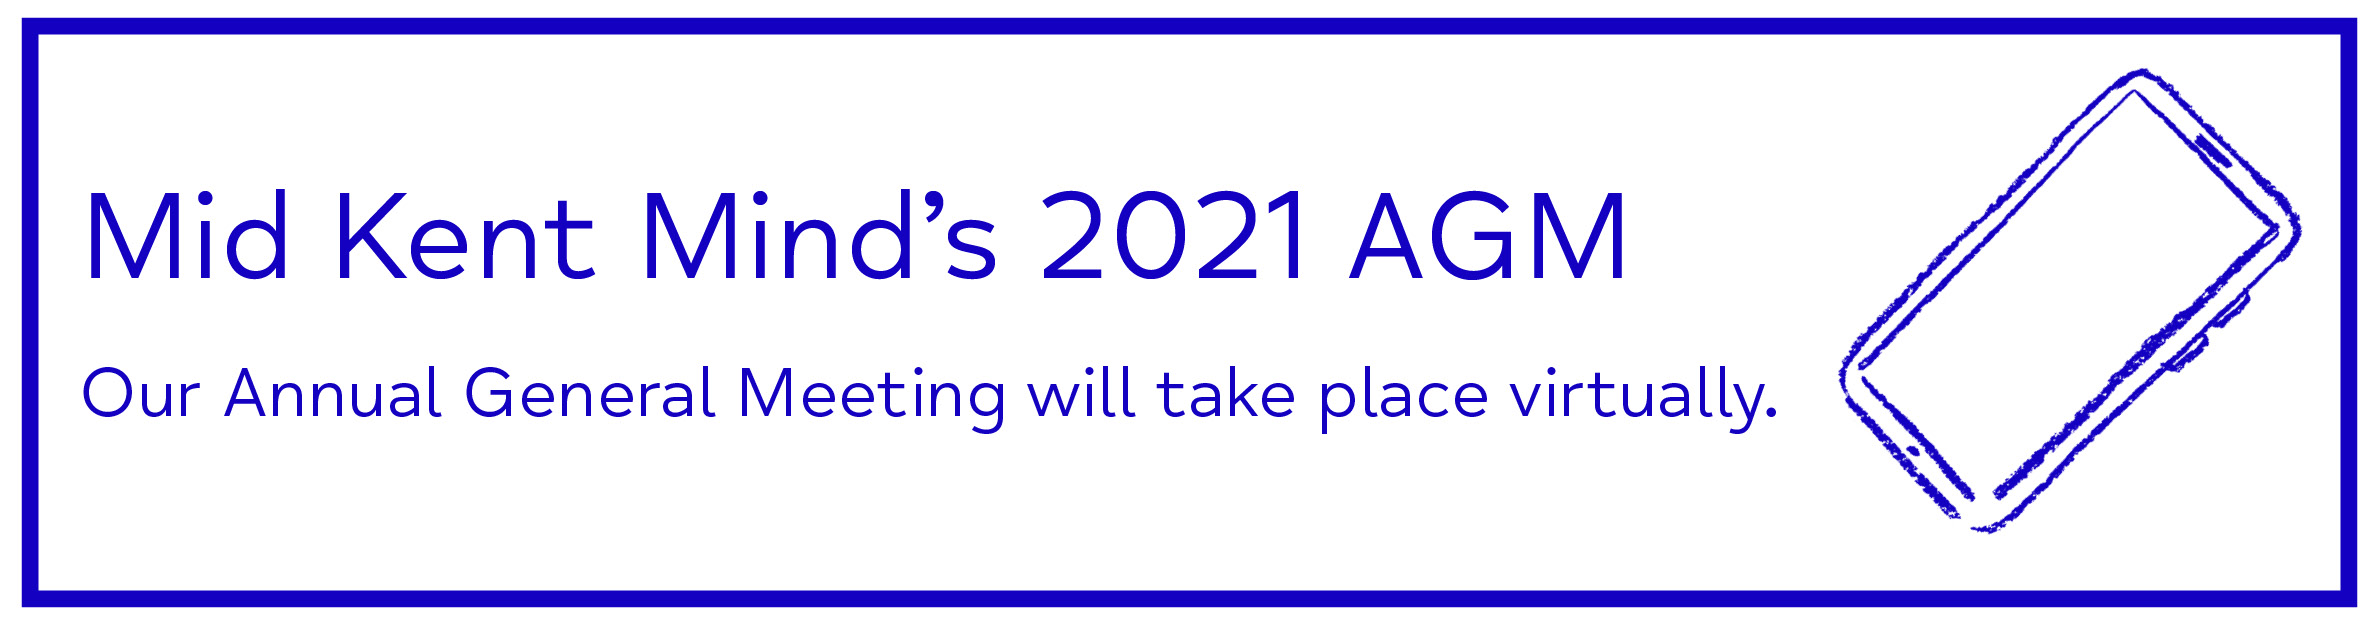 Mid Kent Mind's 2021 AGM Our Annual General Meeting will take place virtually. - Mid Kent Mind